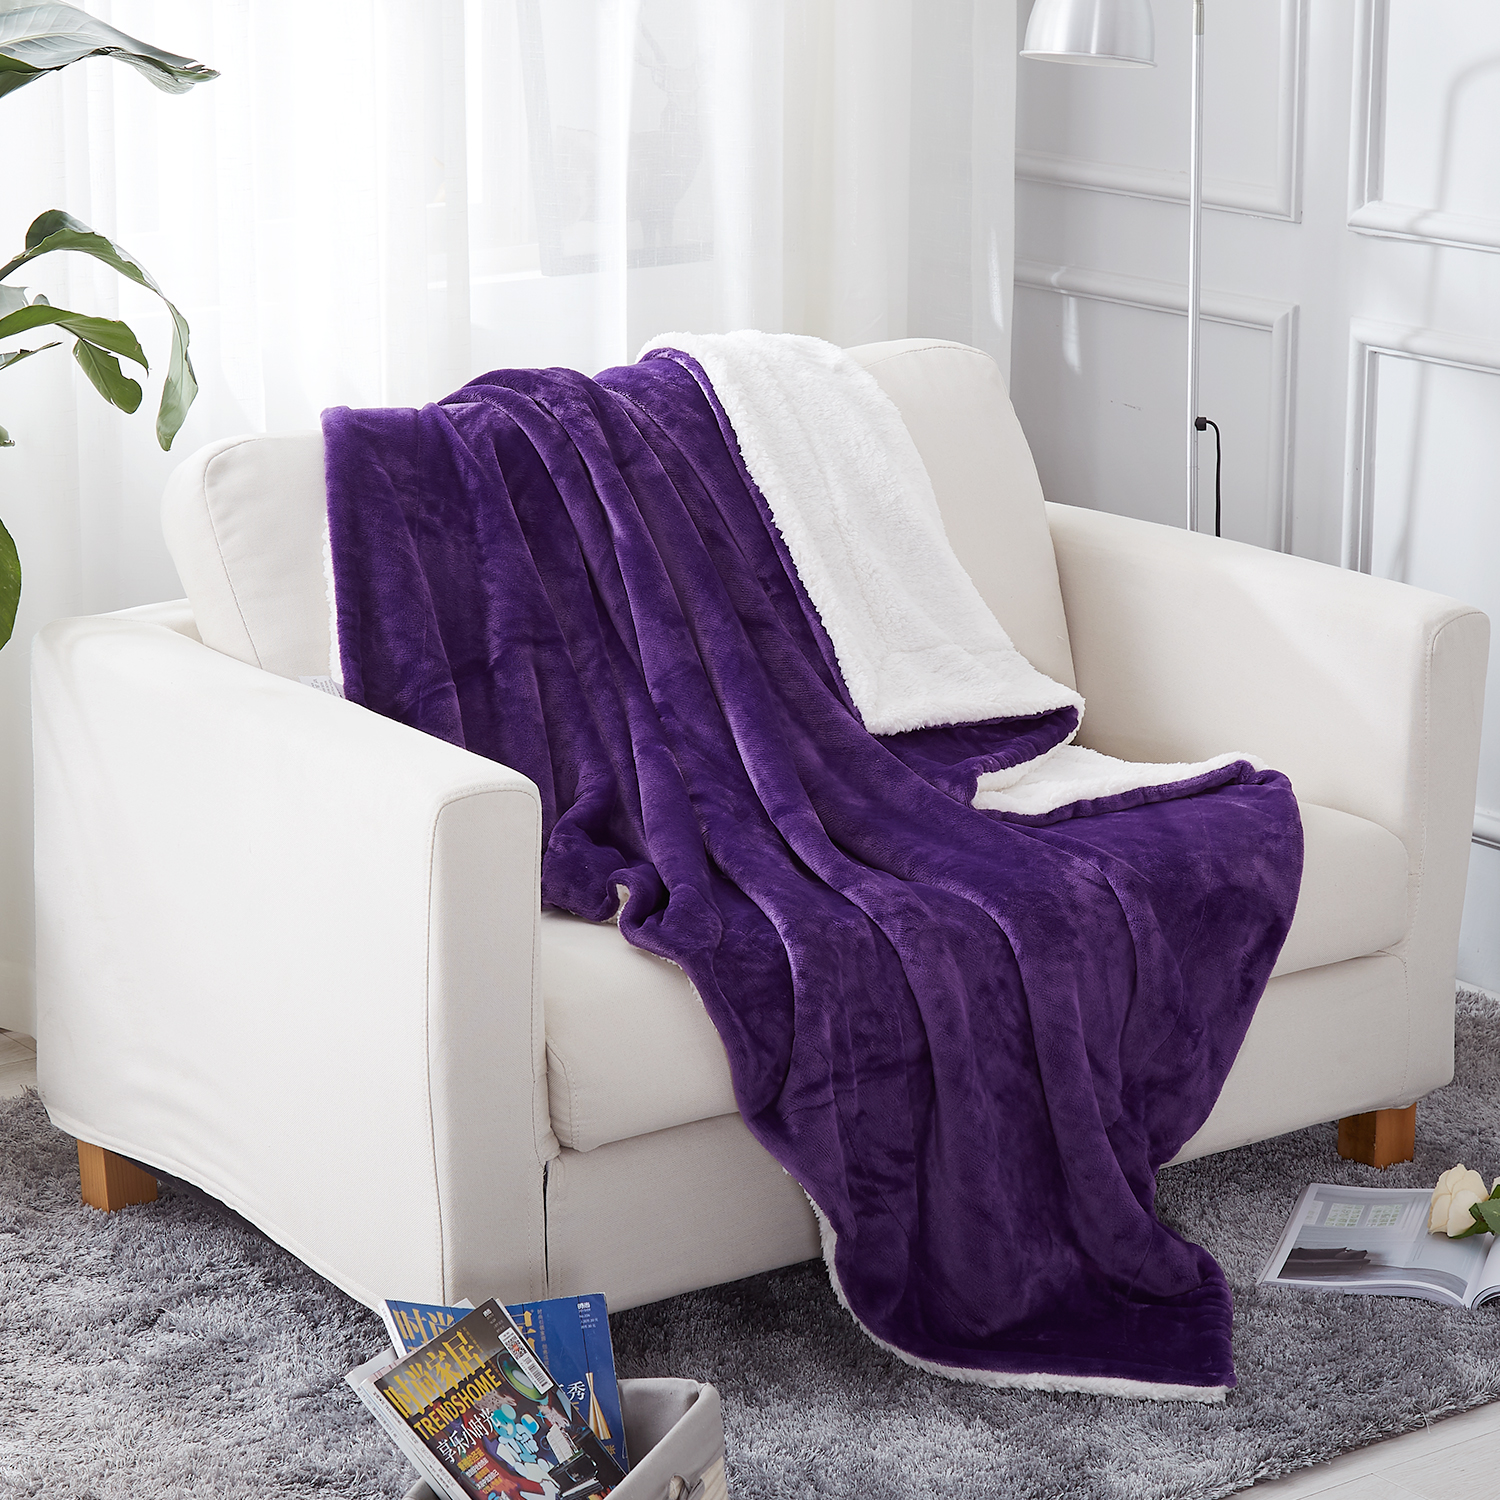 Sherpa Fleece Blanket Twin Size 60 Quot X80 Quot Purple Plush